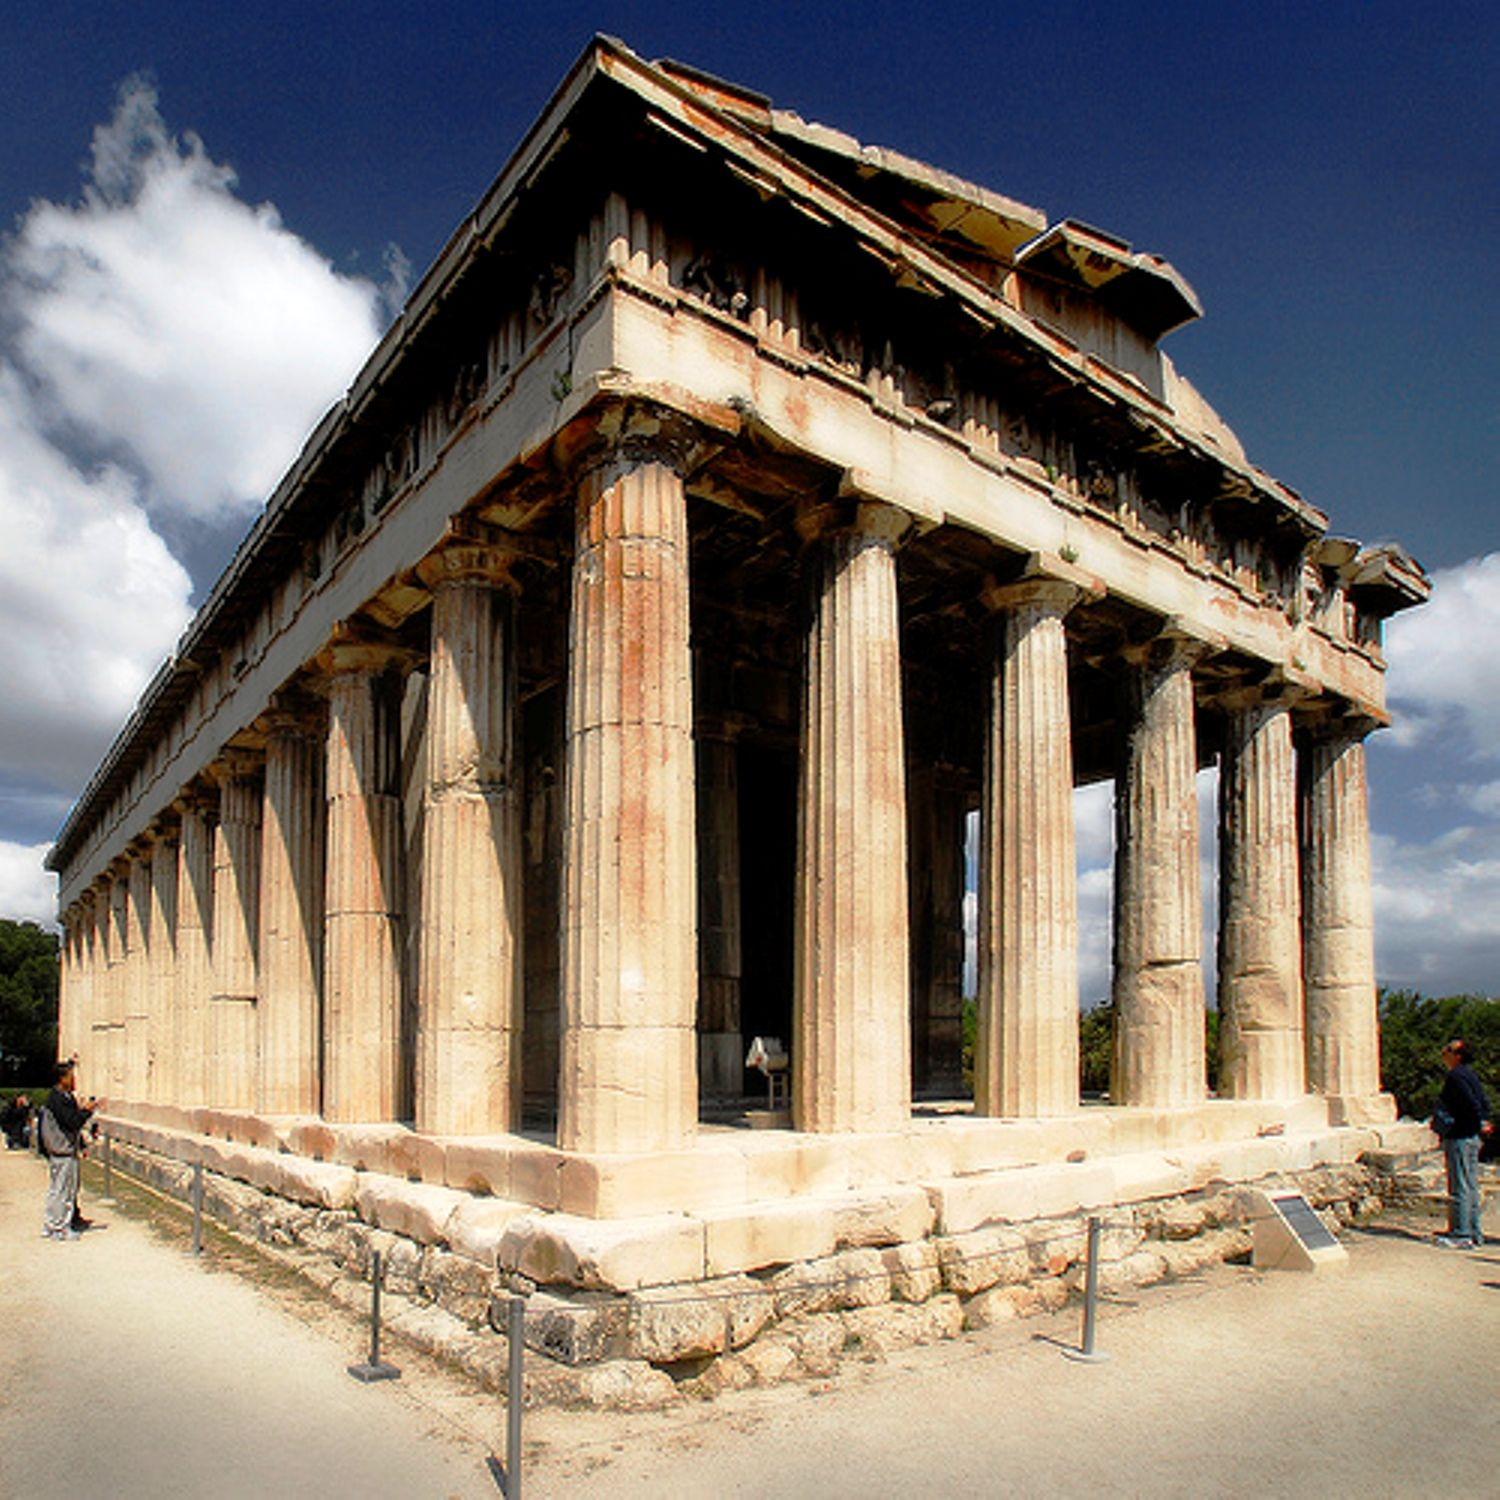 The parthenon the epitome of the doric order - The Temple Of Hephaestus In Athens Ancient Agora